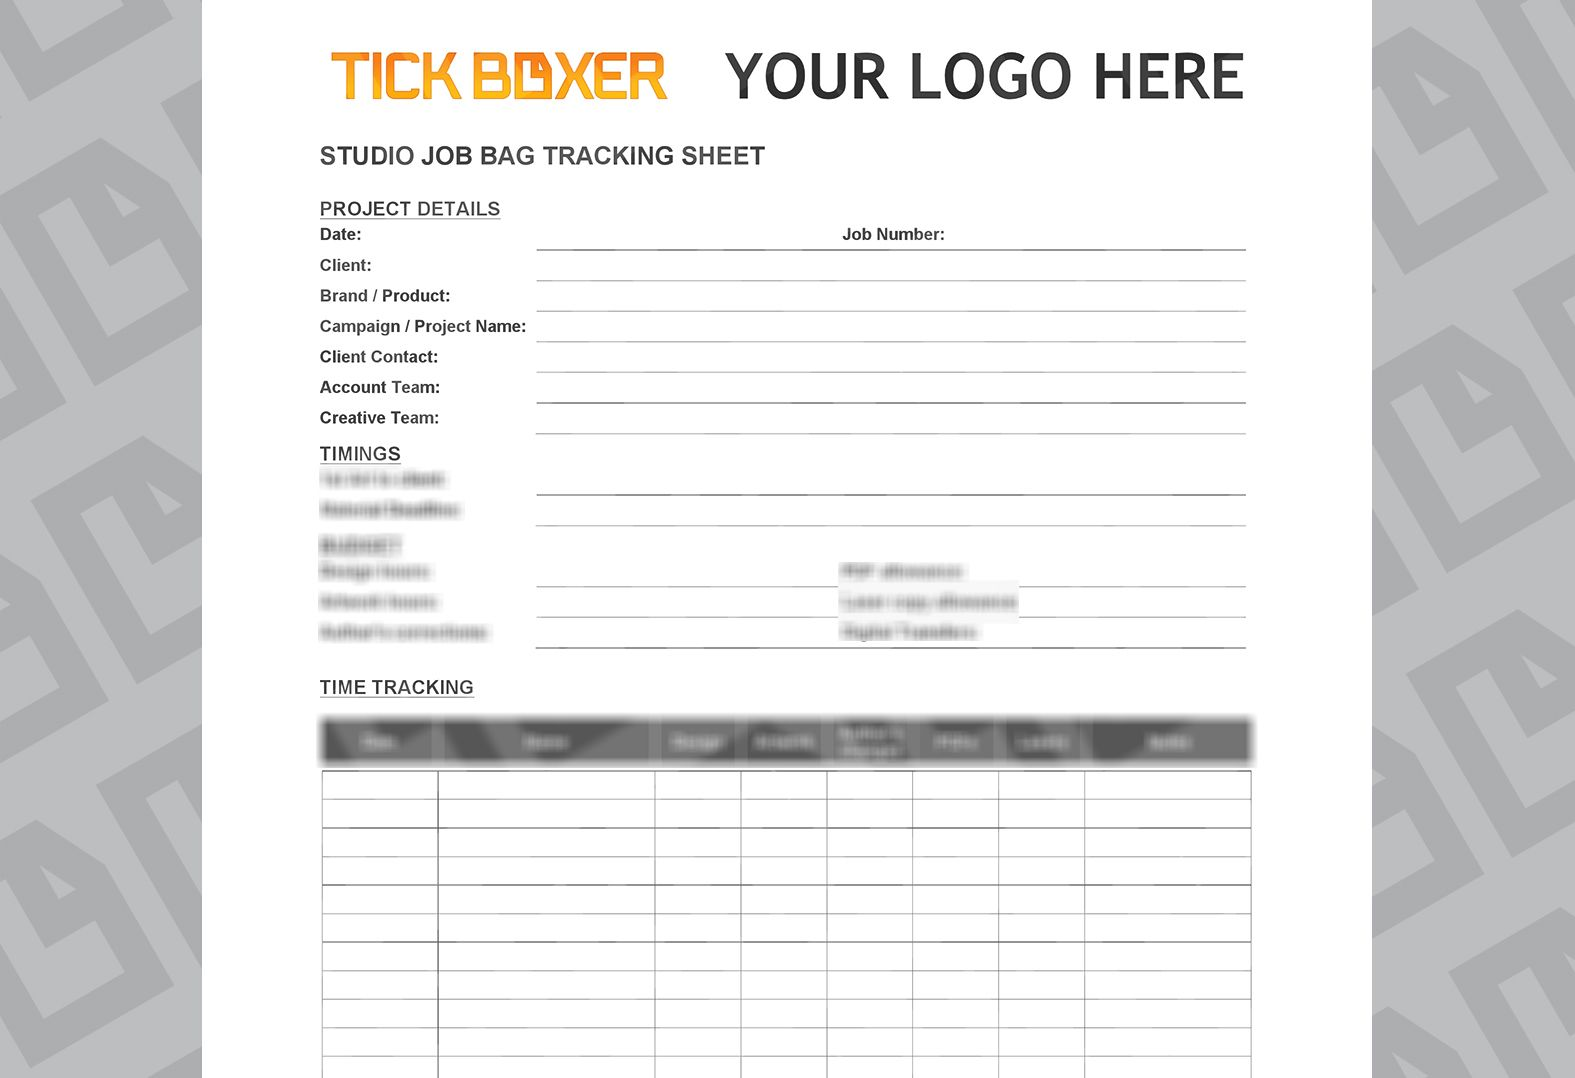 A Studio Job Bag Cover Sheet To Track Time And Costs Against Studio Budget  For Marketing, Advertising And Design Projects   Including Examples And ...  Job Sheets Examples